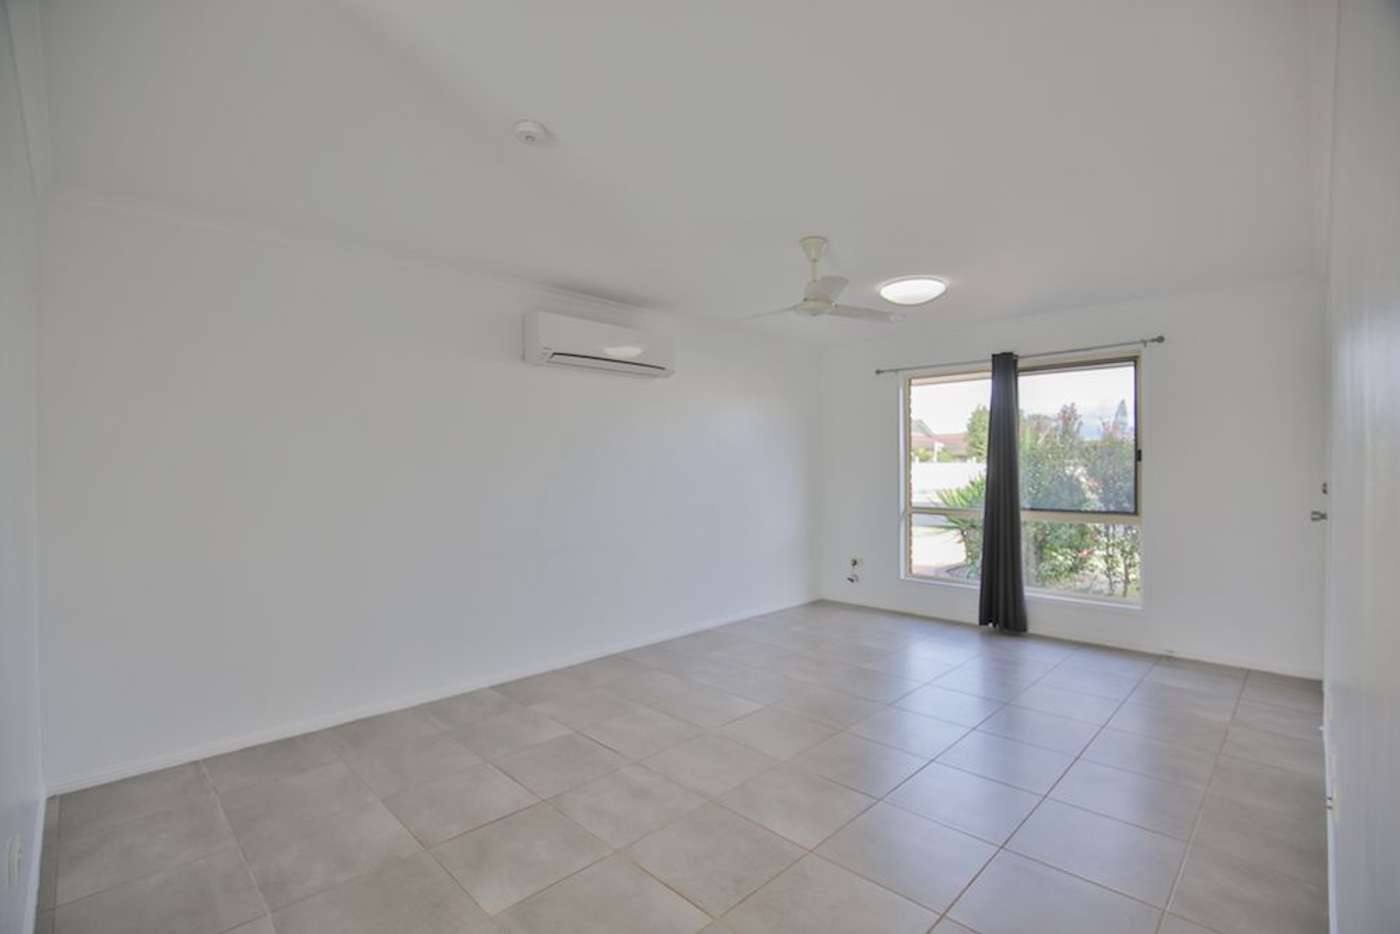 Fifth view of Homely house listing, 22 Seymore Avenue, Kalkie QLD 4670